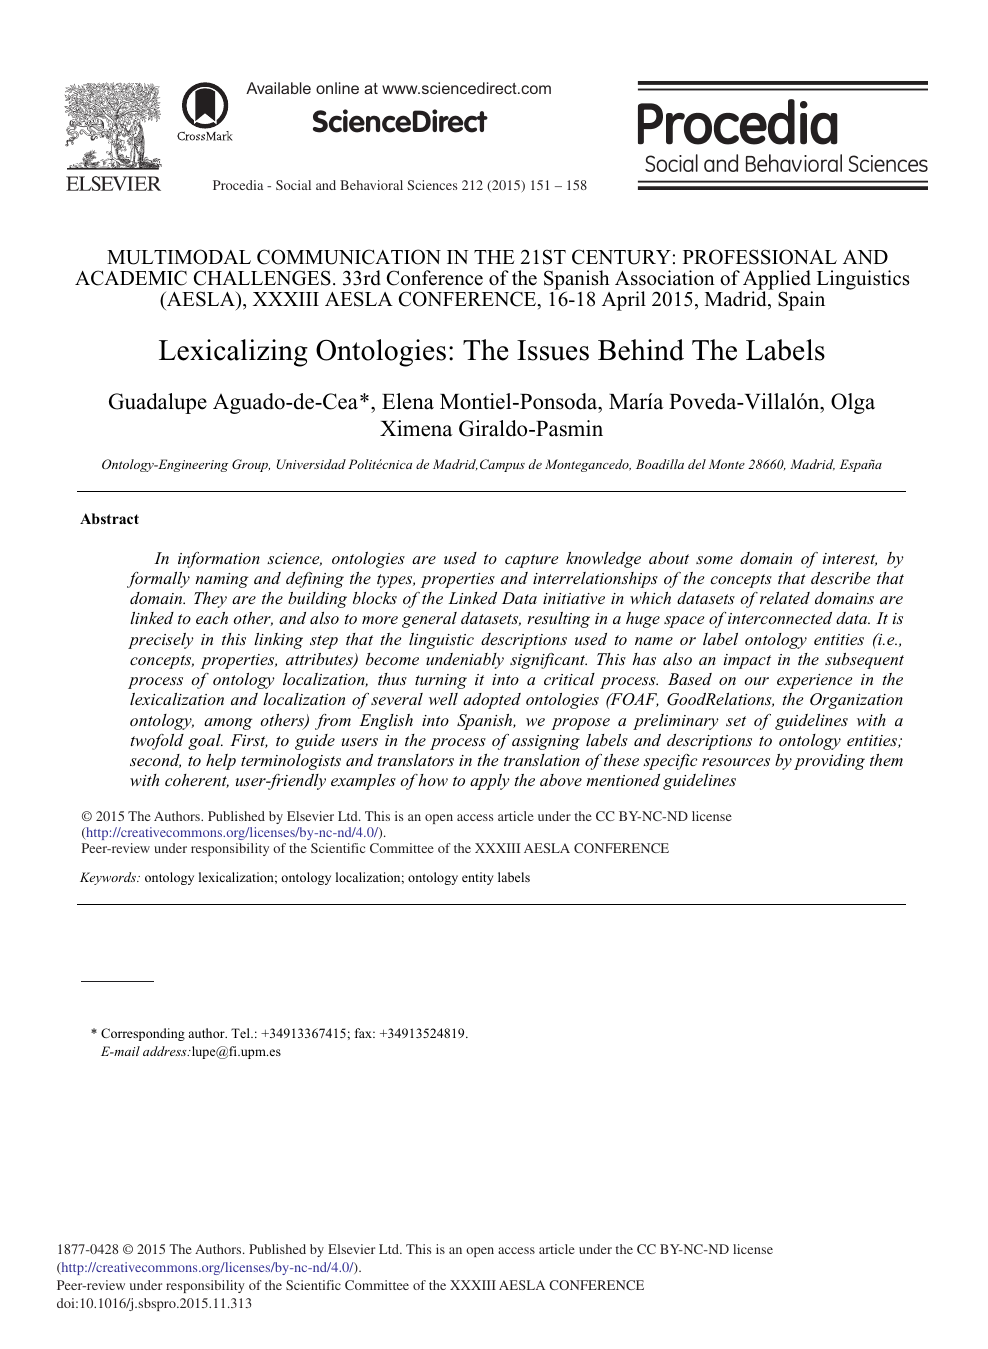 Lexicalizing Ontologies The Issues Behind The Labels